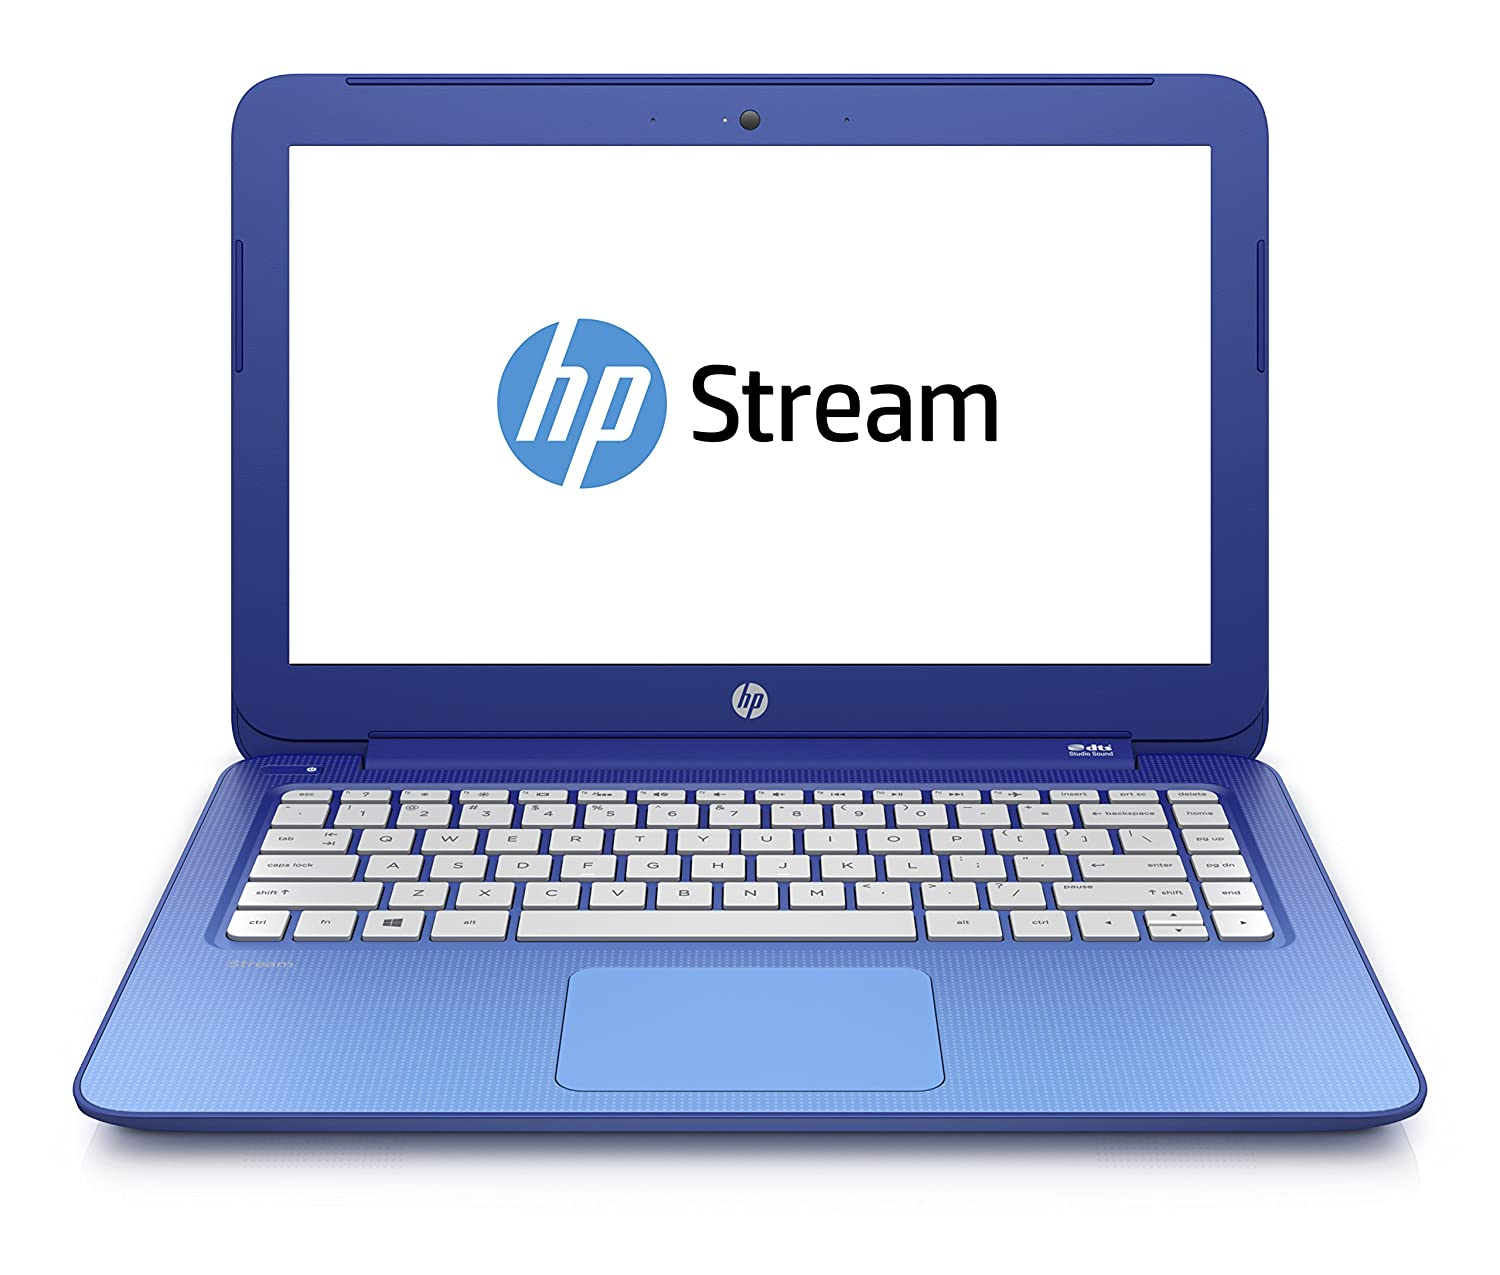 HP Stream 13-c005ns - Portátil de 13.3